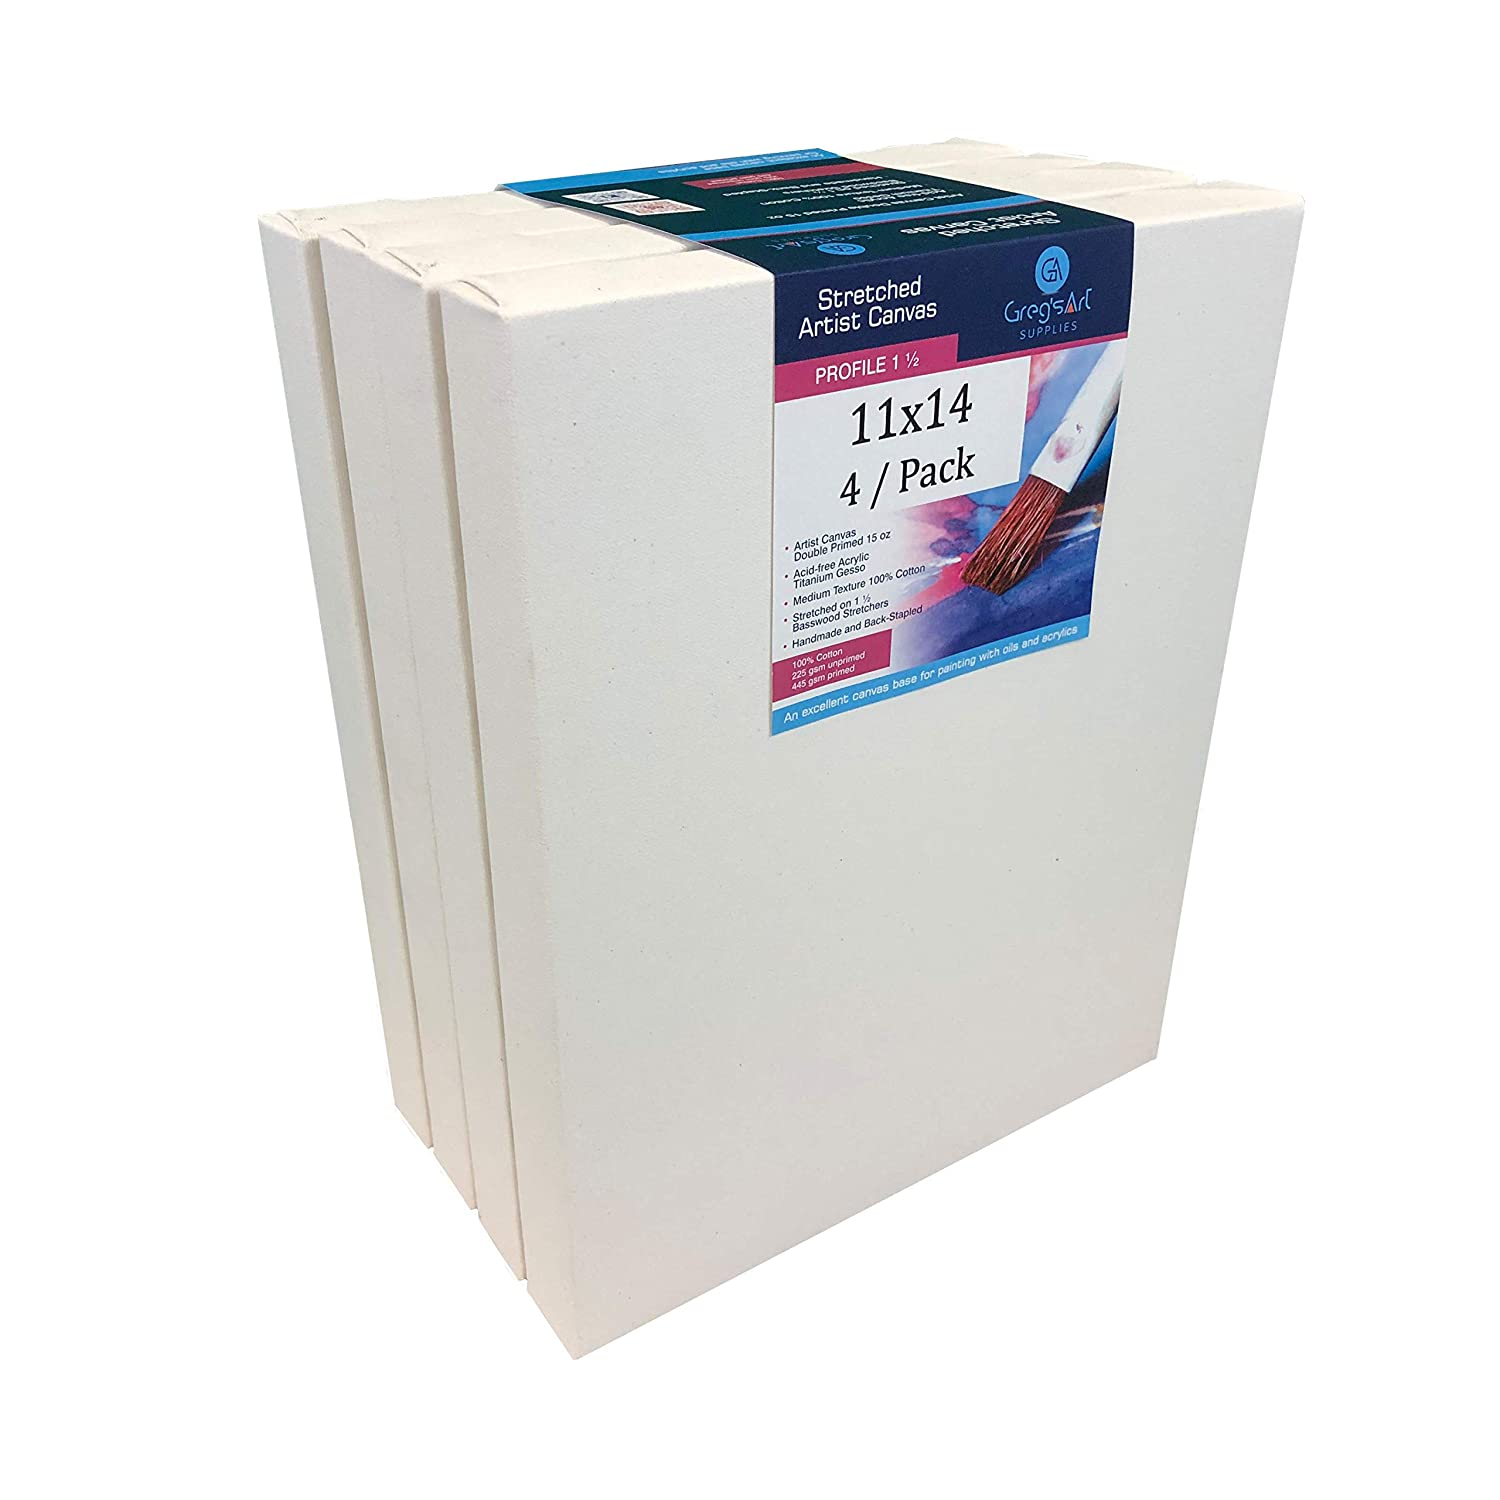 """Double Primed with Acrylic Gesso 15 oz 8 x 8 4 // Pack On 1 /½/"""" Stretcher Bars Acrylic Paints /& Mixed Media Applications Suitable for Oil North American Made Artist Canvas Back Stapled"""